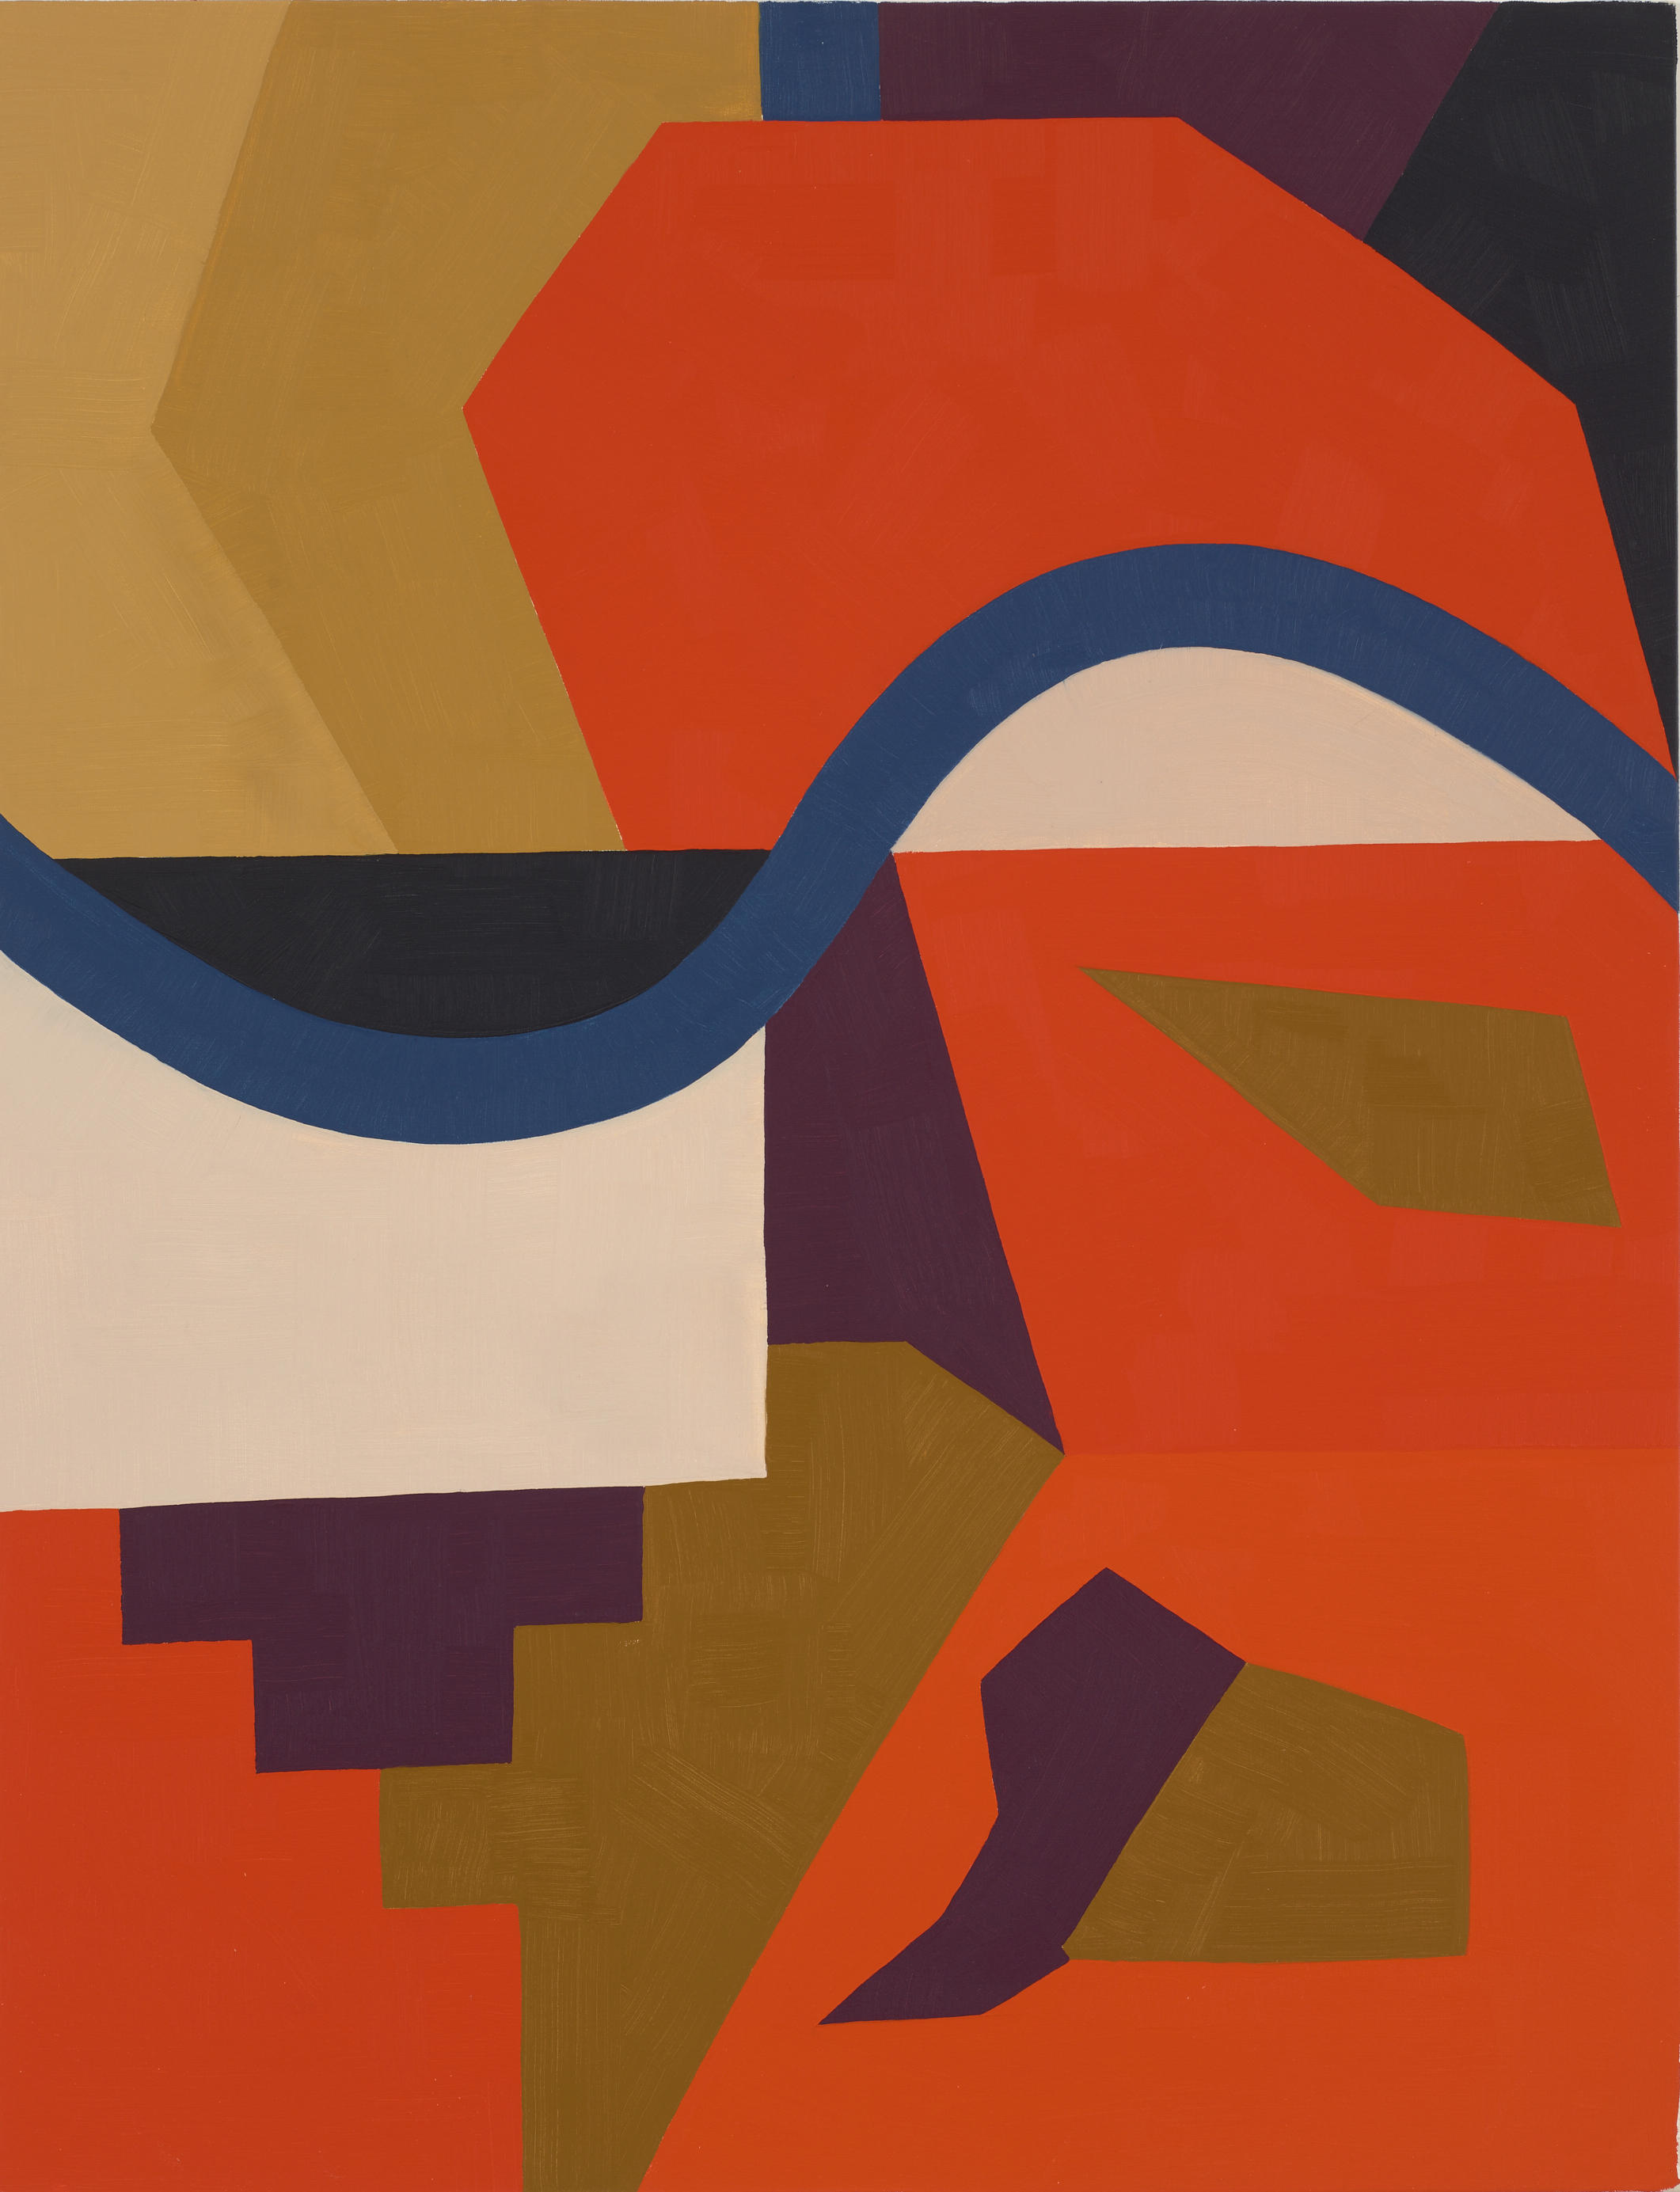 Face the Wave, 1989-90, oil on canvas, 52 x 40 inch